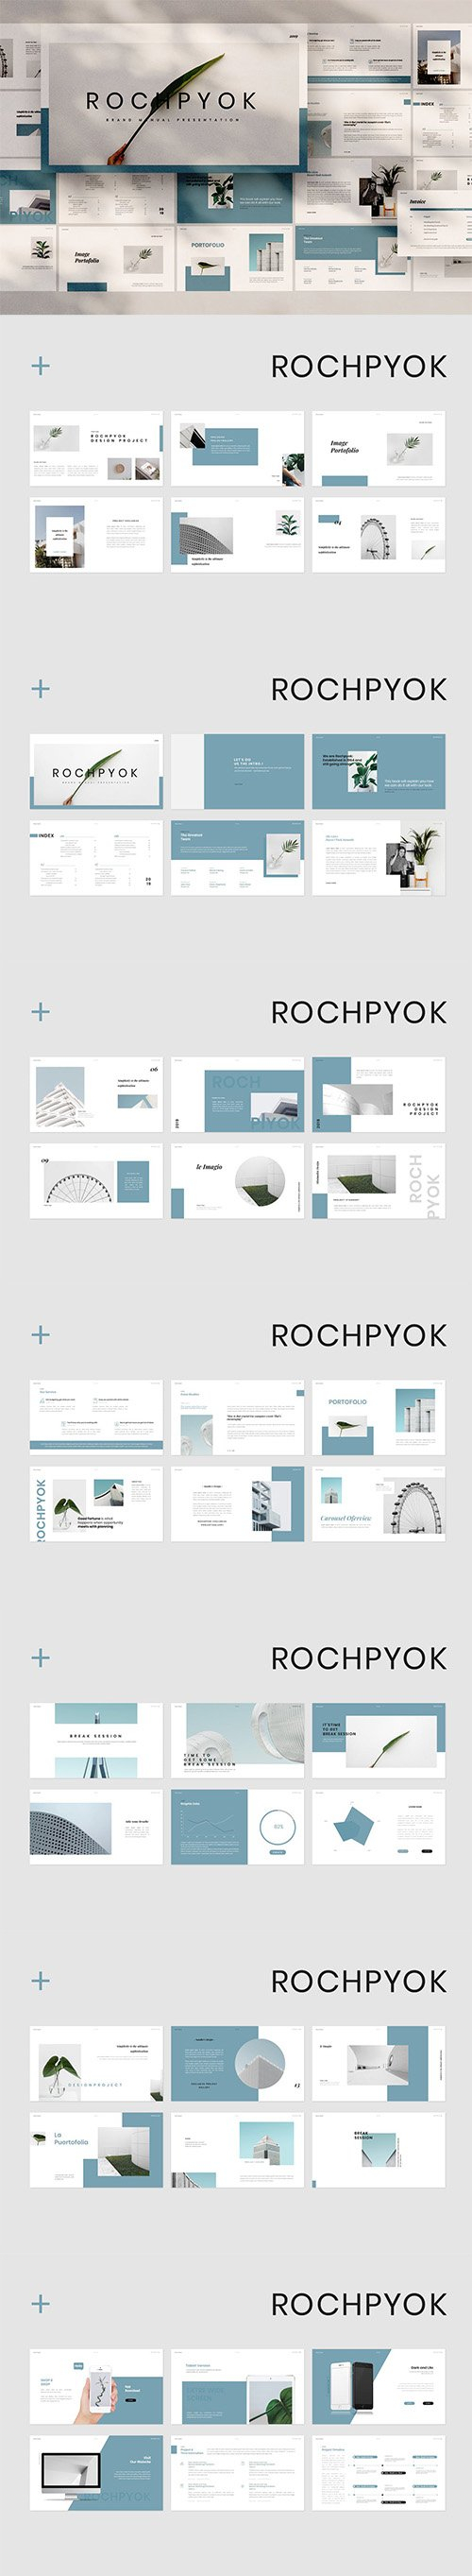 Rochpyok Powerpoint, Keynote and Google Slides Templates